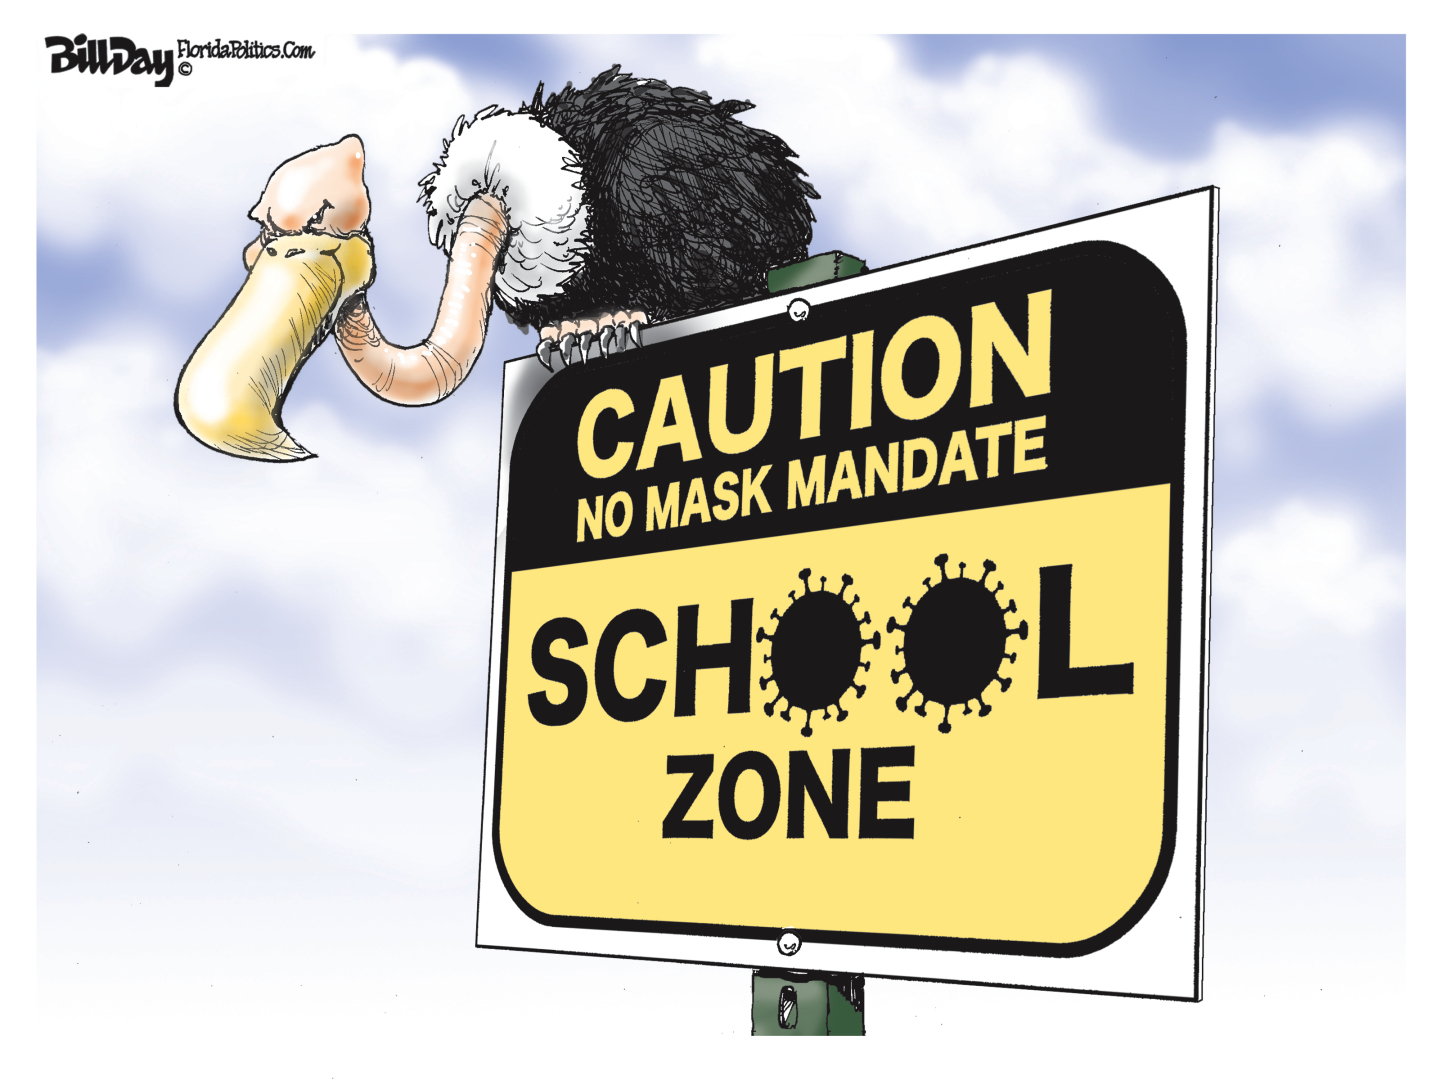 Republicans challenge mask mandates that would protect put school children at risk for the sake of scoring political points.